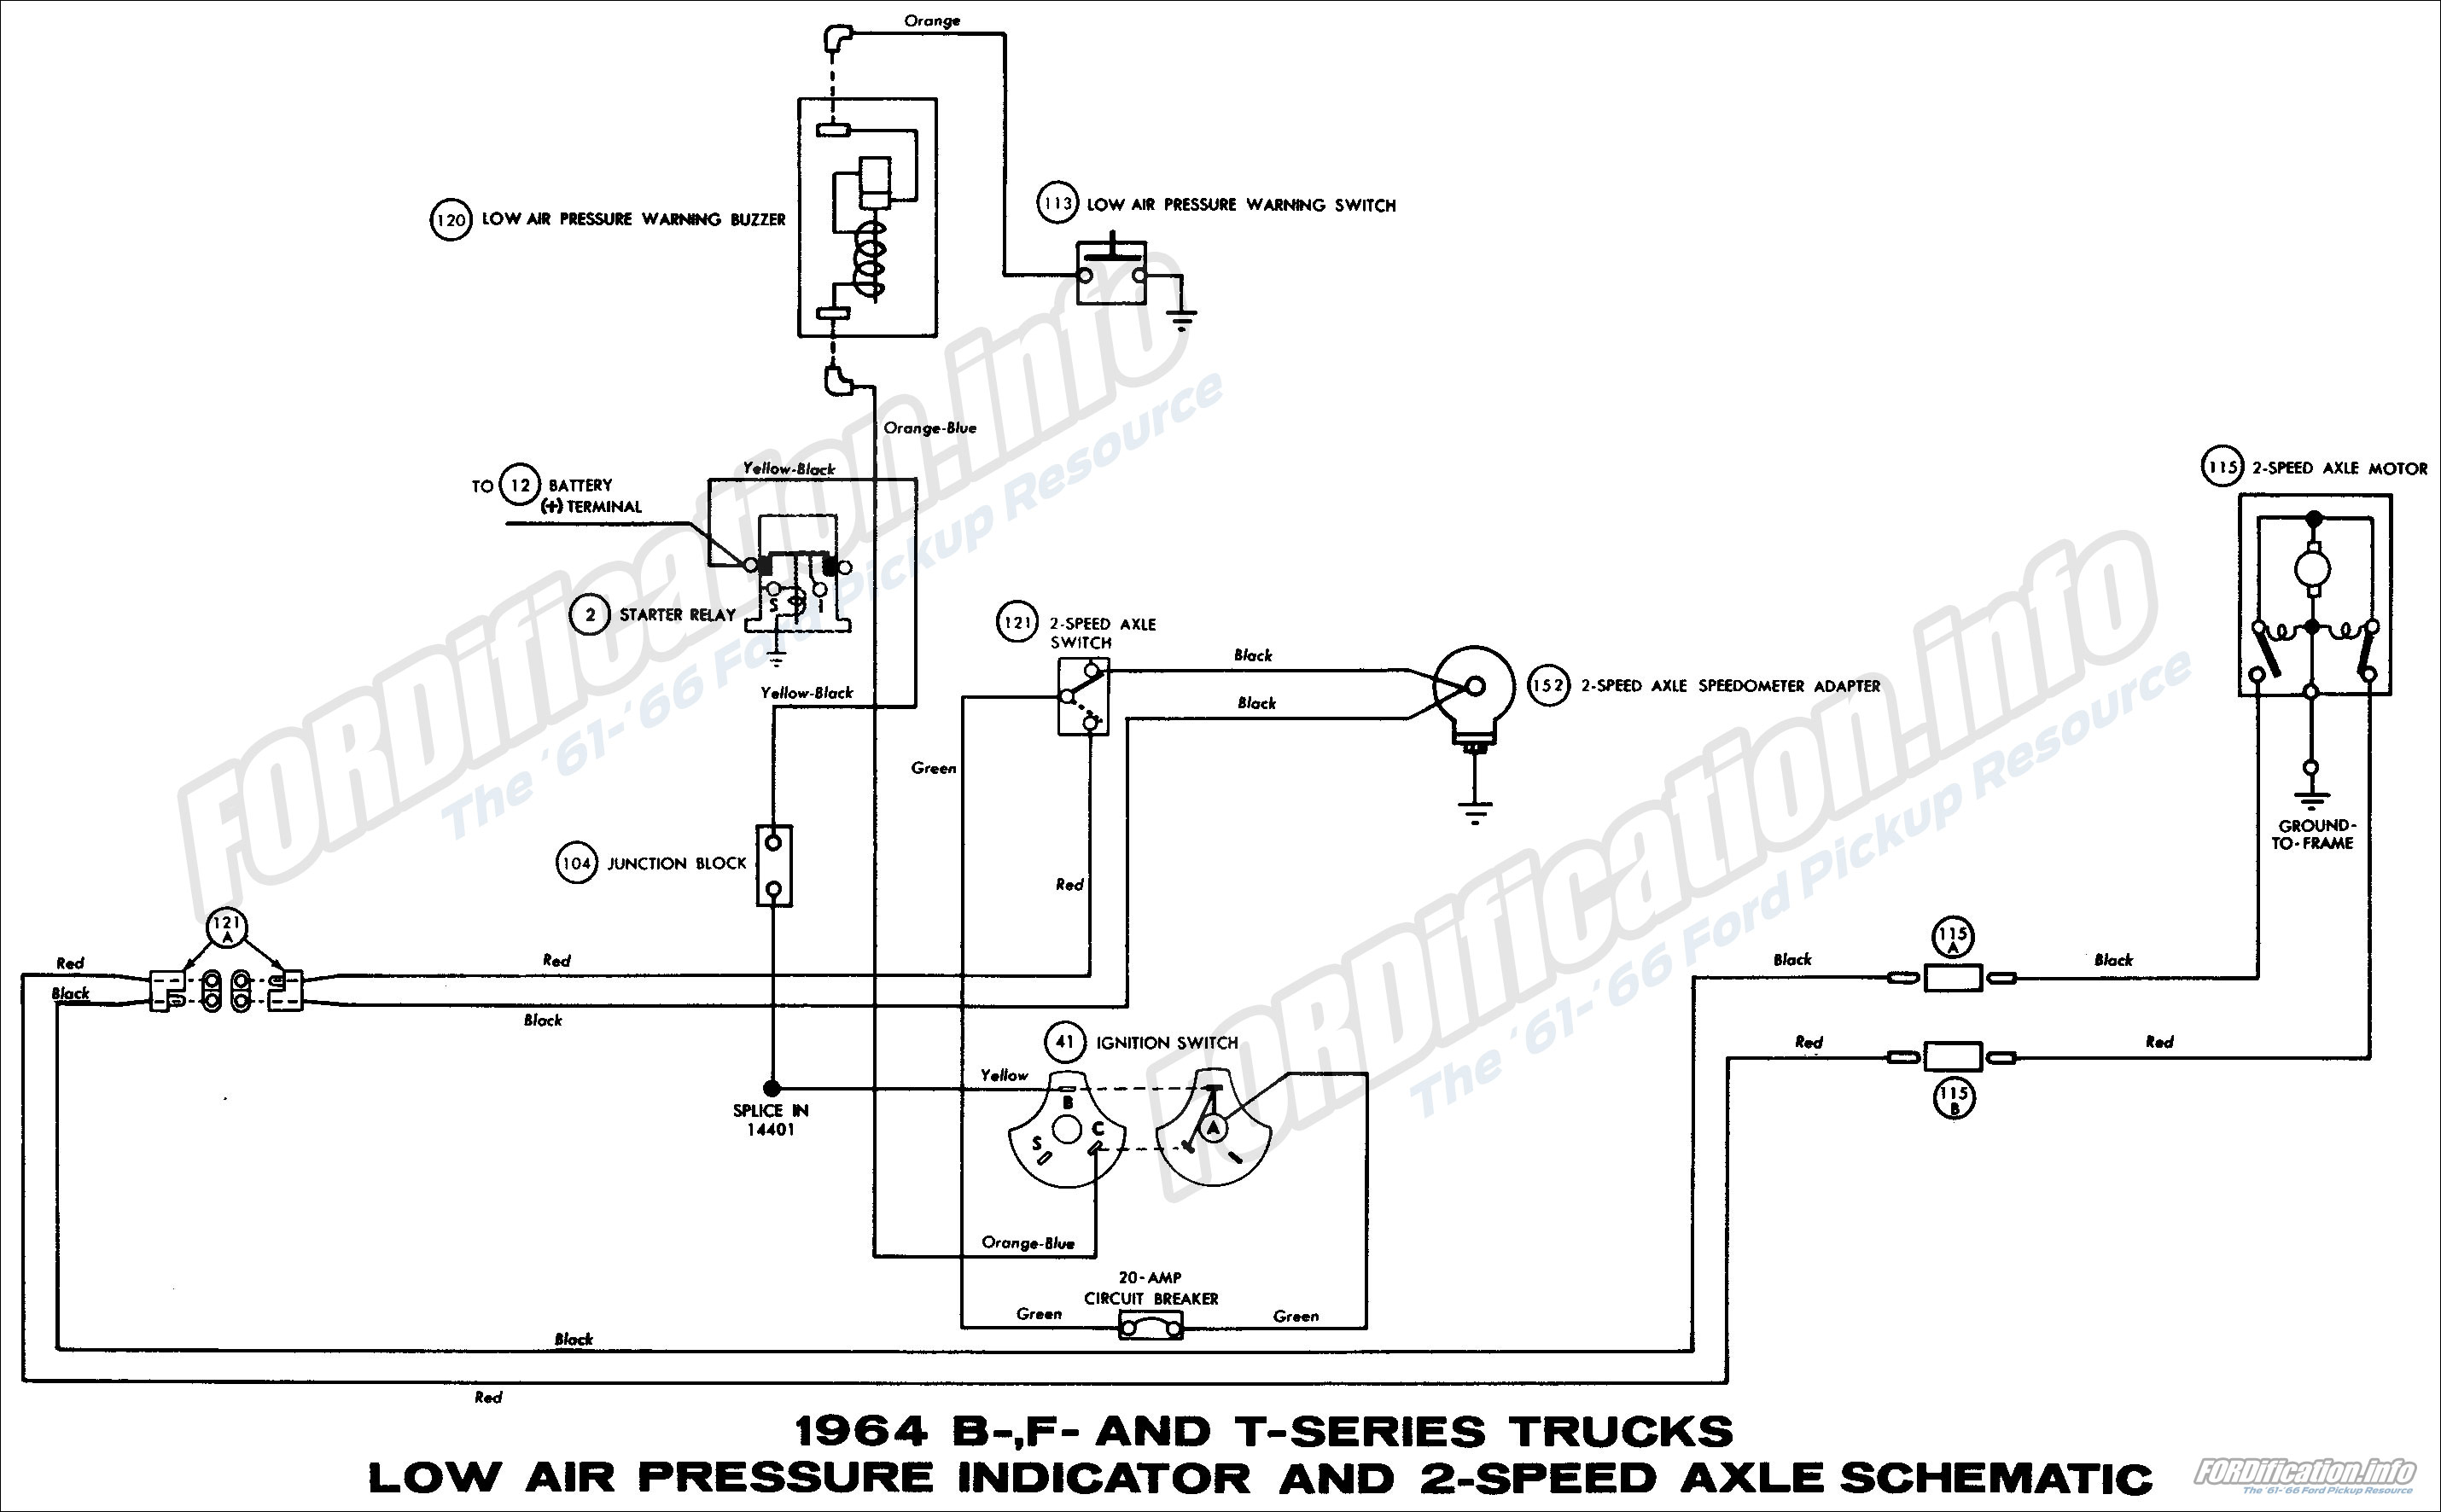 1964_17 1964 ford truck wiring diagrams fordification info the '61 '66 1965 ford truck wiring diagram at panicattacktreatment.co